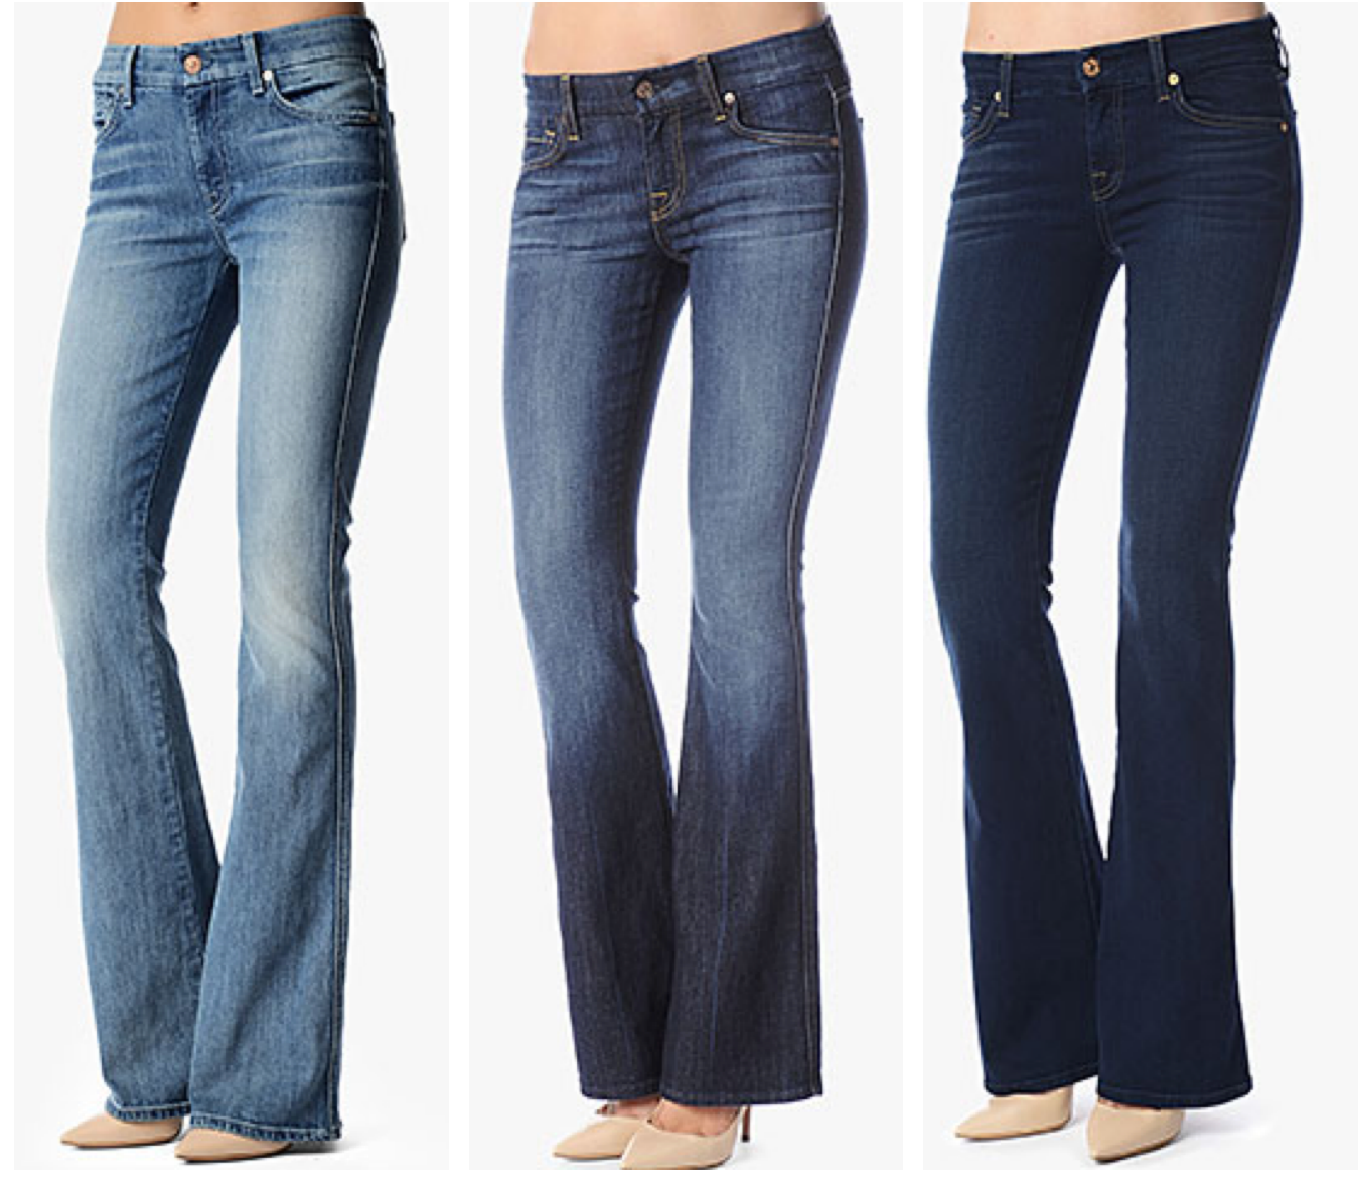 Jean Guide: Best Jeans for Moms